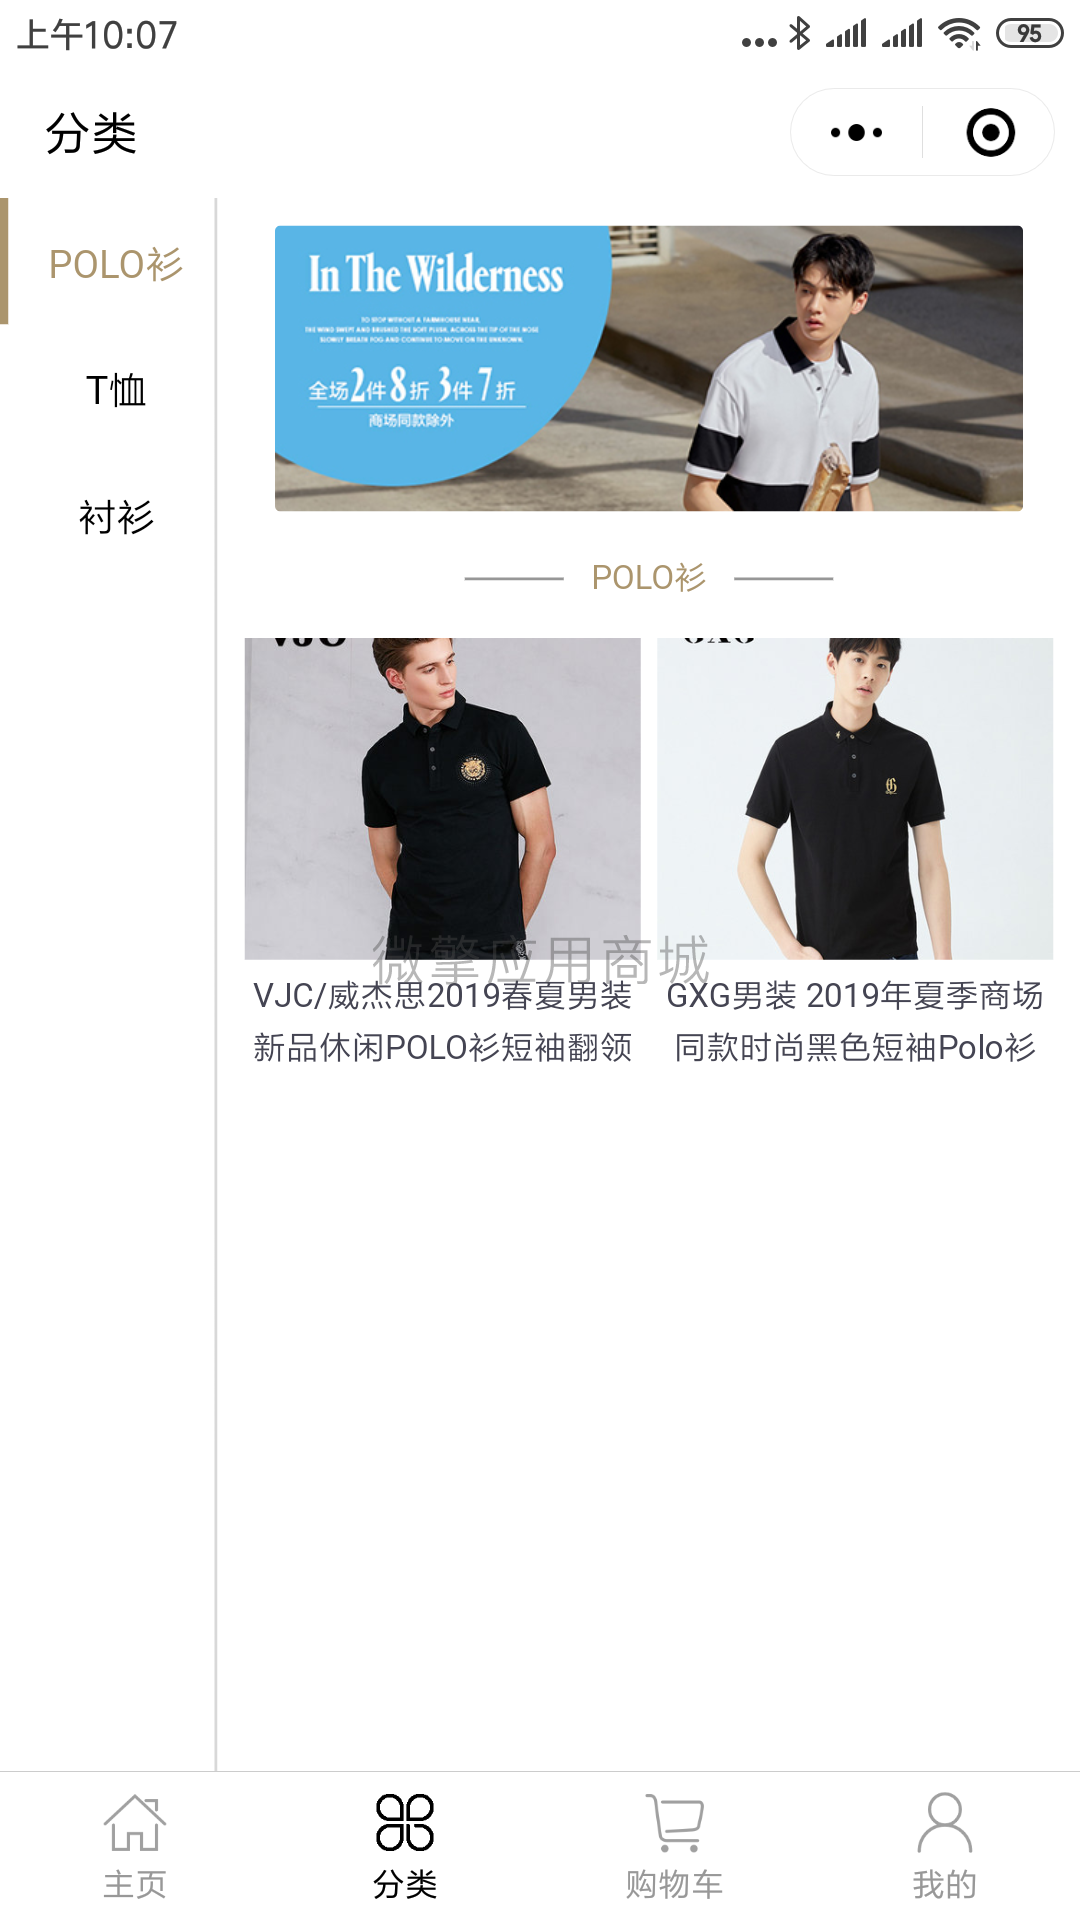 Screenshot_2019-05-30-10-07-50-808_com.tencent.mm.png